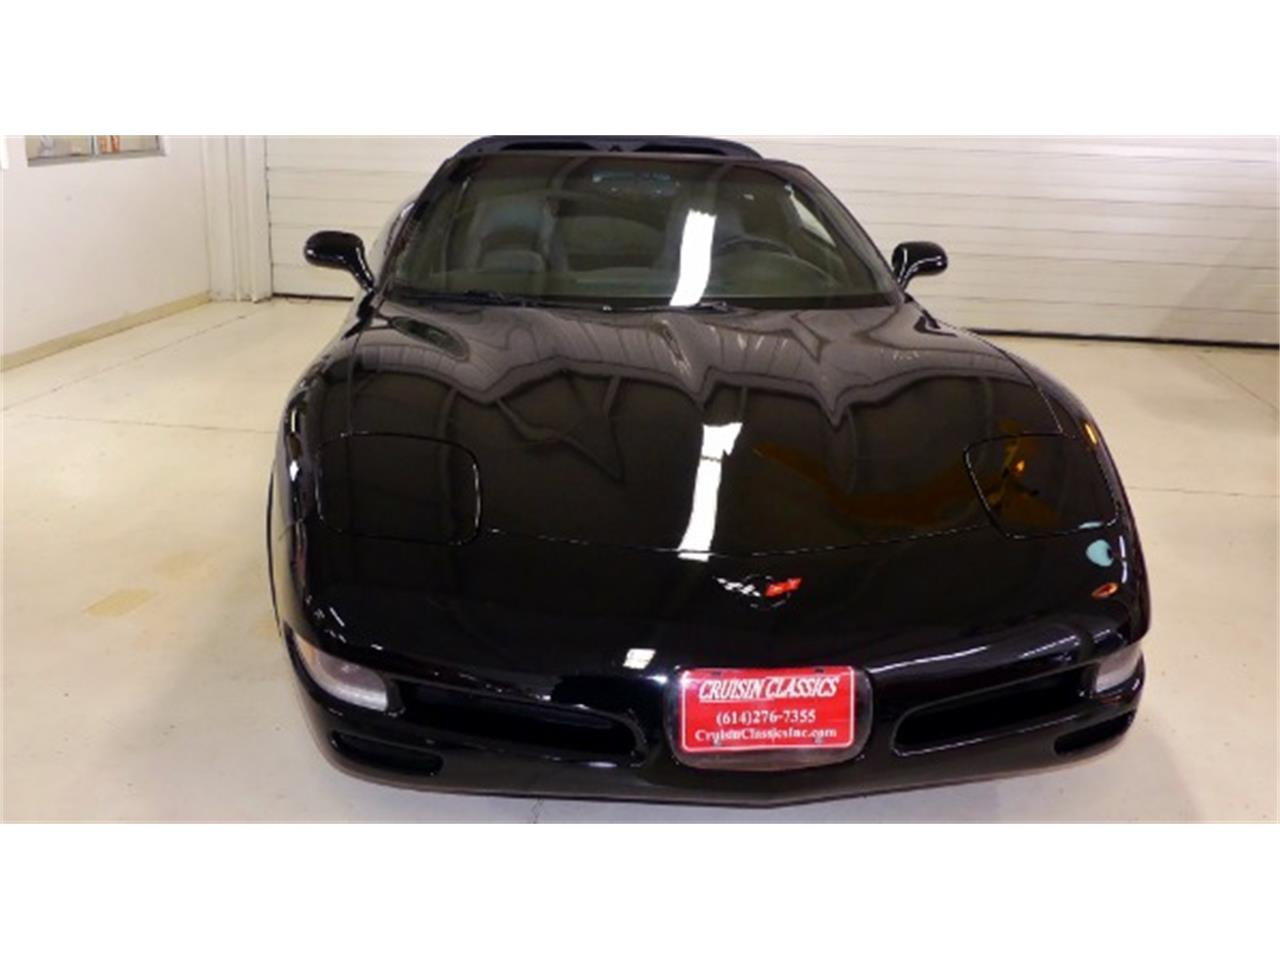 Large Picture of '98 Corvette - $18,995.00 Offered by Cruisin Classics - PV85